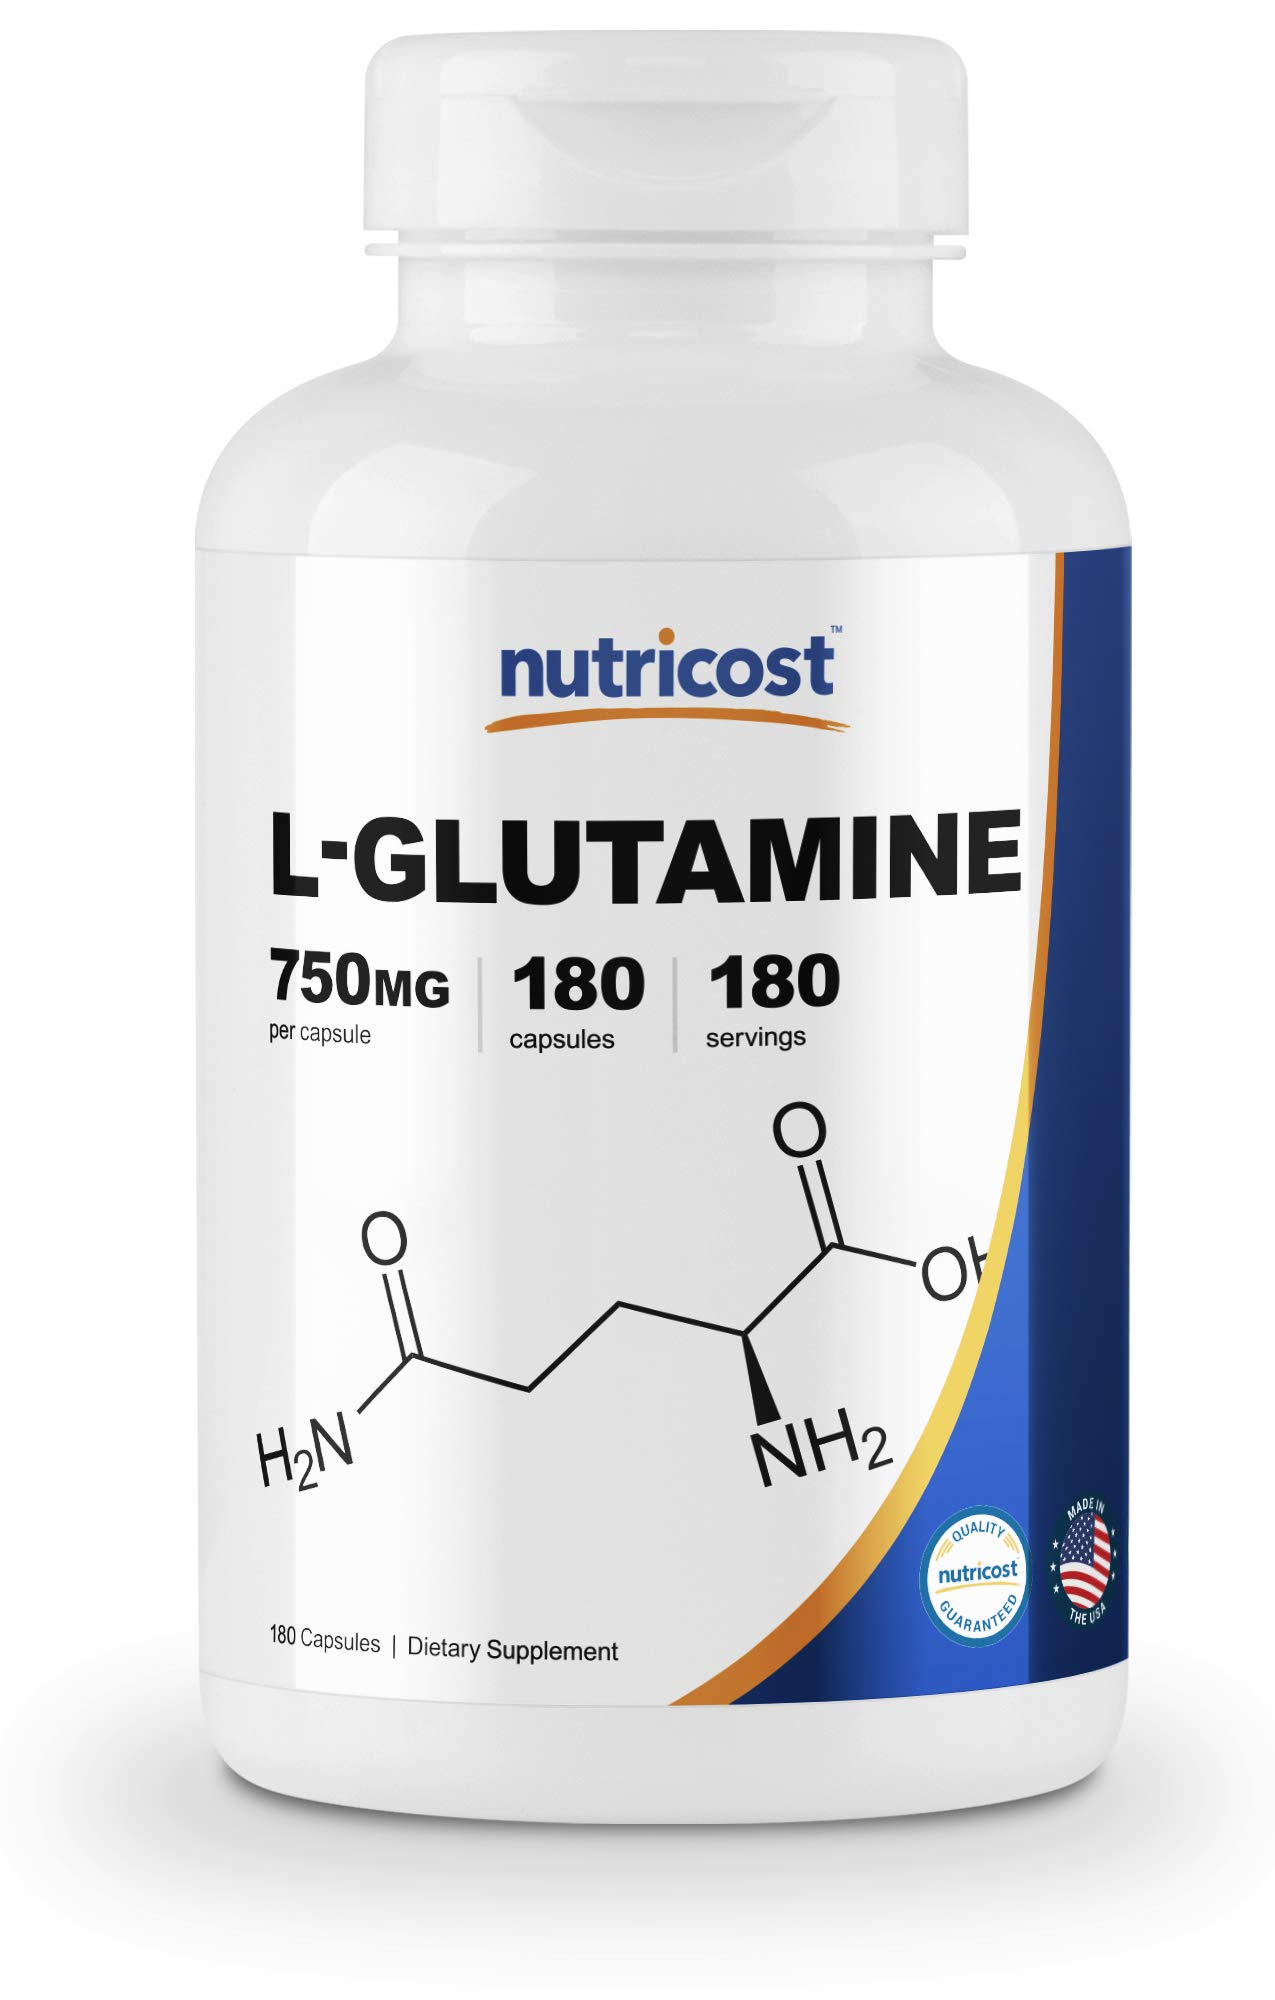 Nutricost L-Glutamine 750mg; 180 Capsules by Nutricost